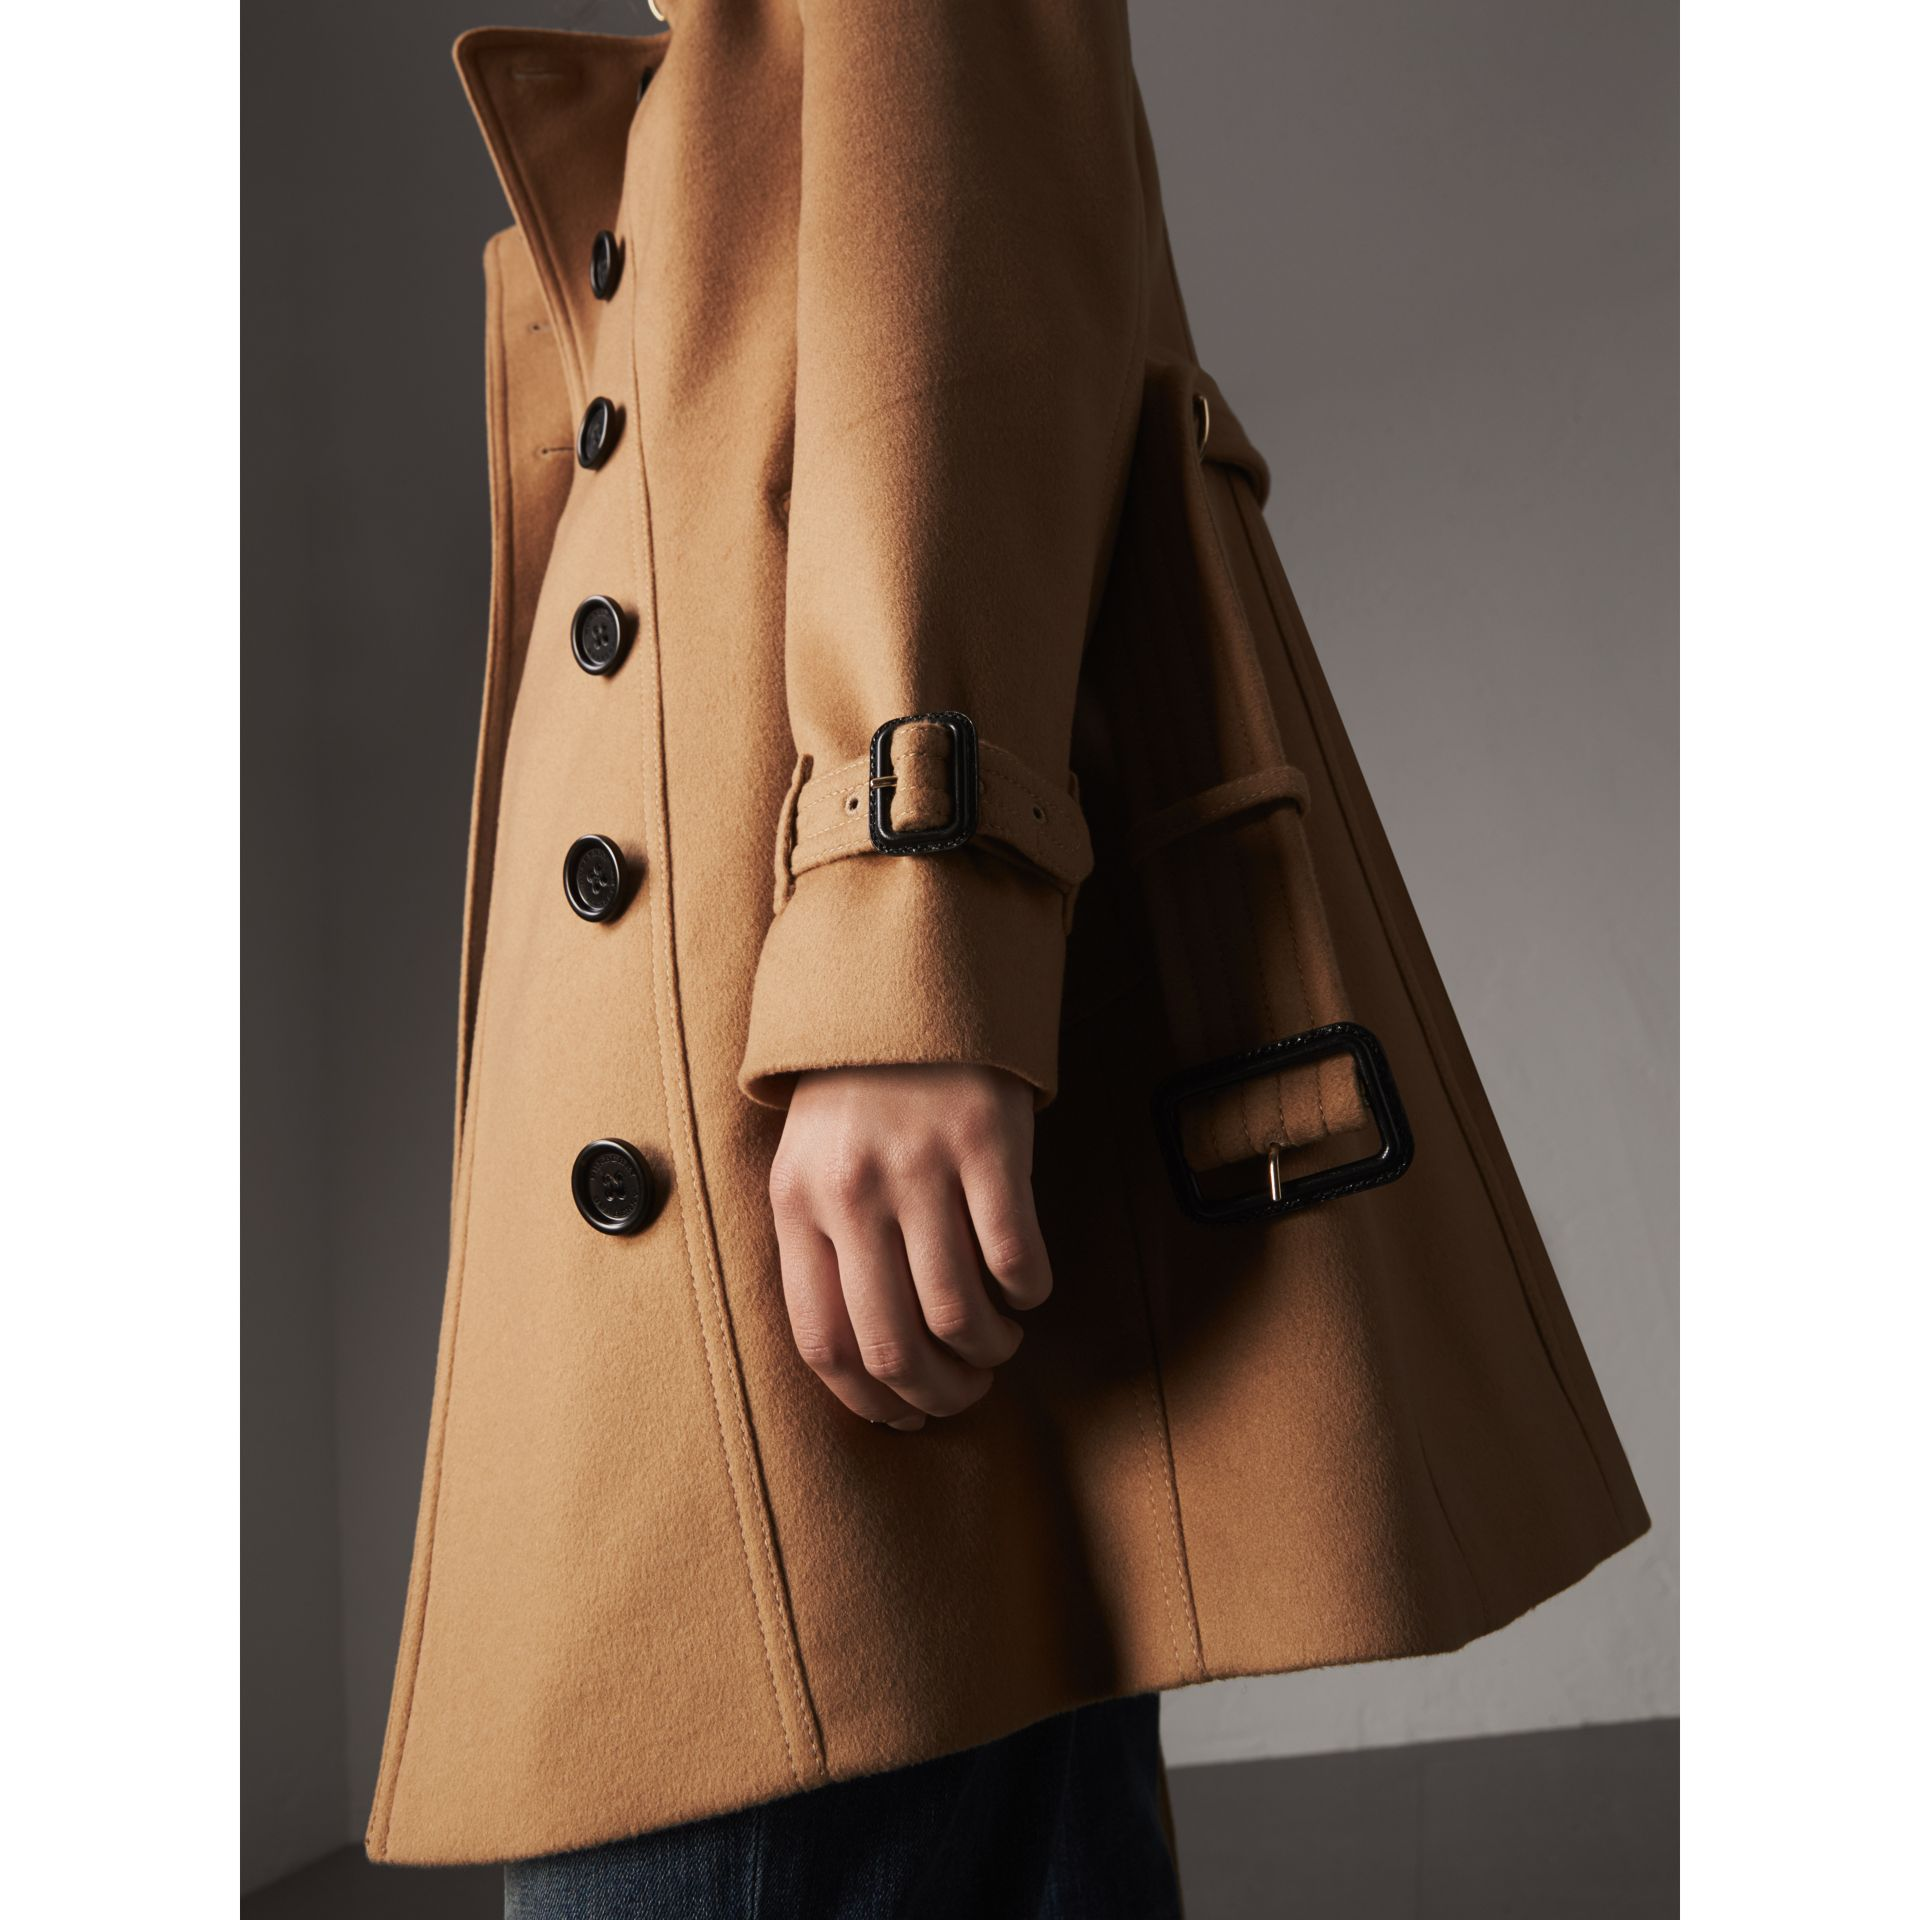 Wool Cashmere Trench Coat with Fur Collar in Camel - Women | Burberry - gallery image 1